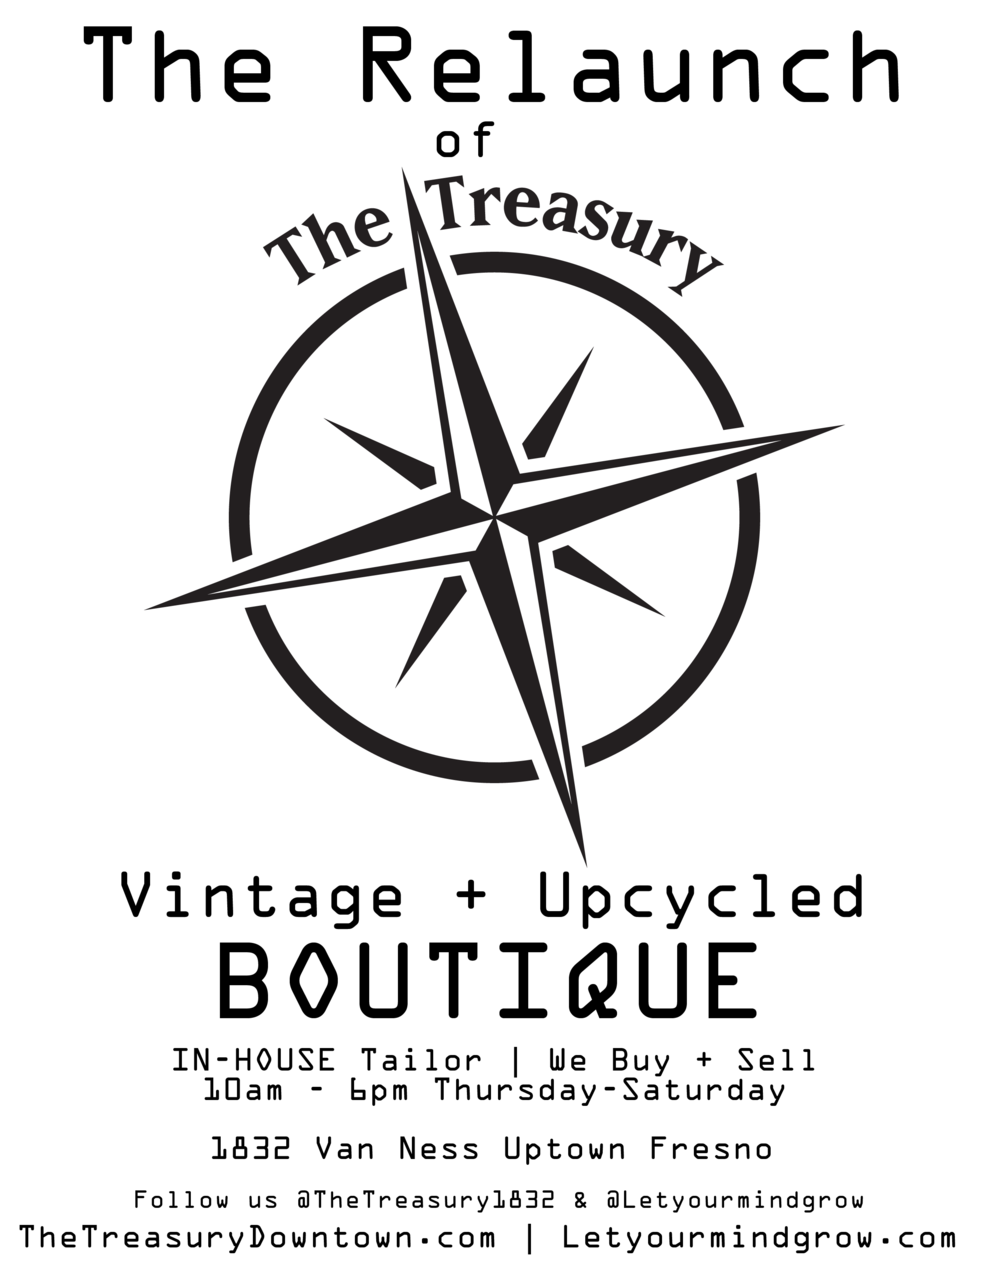 The Relaunch of The Treasury. Vintage & Upcycled Boutique 1832 Van Ness Uptown Fresno